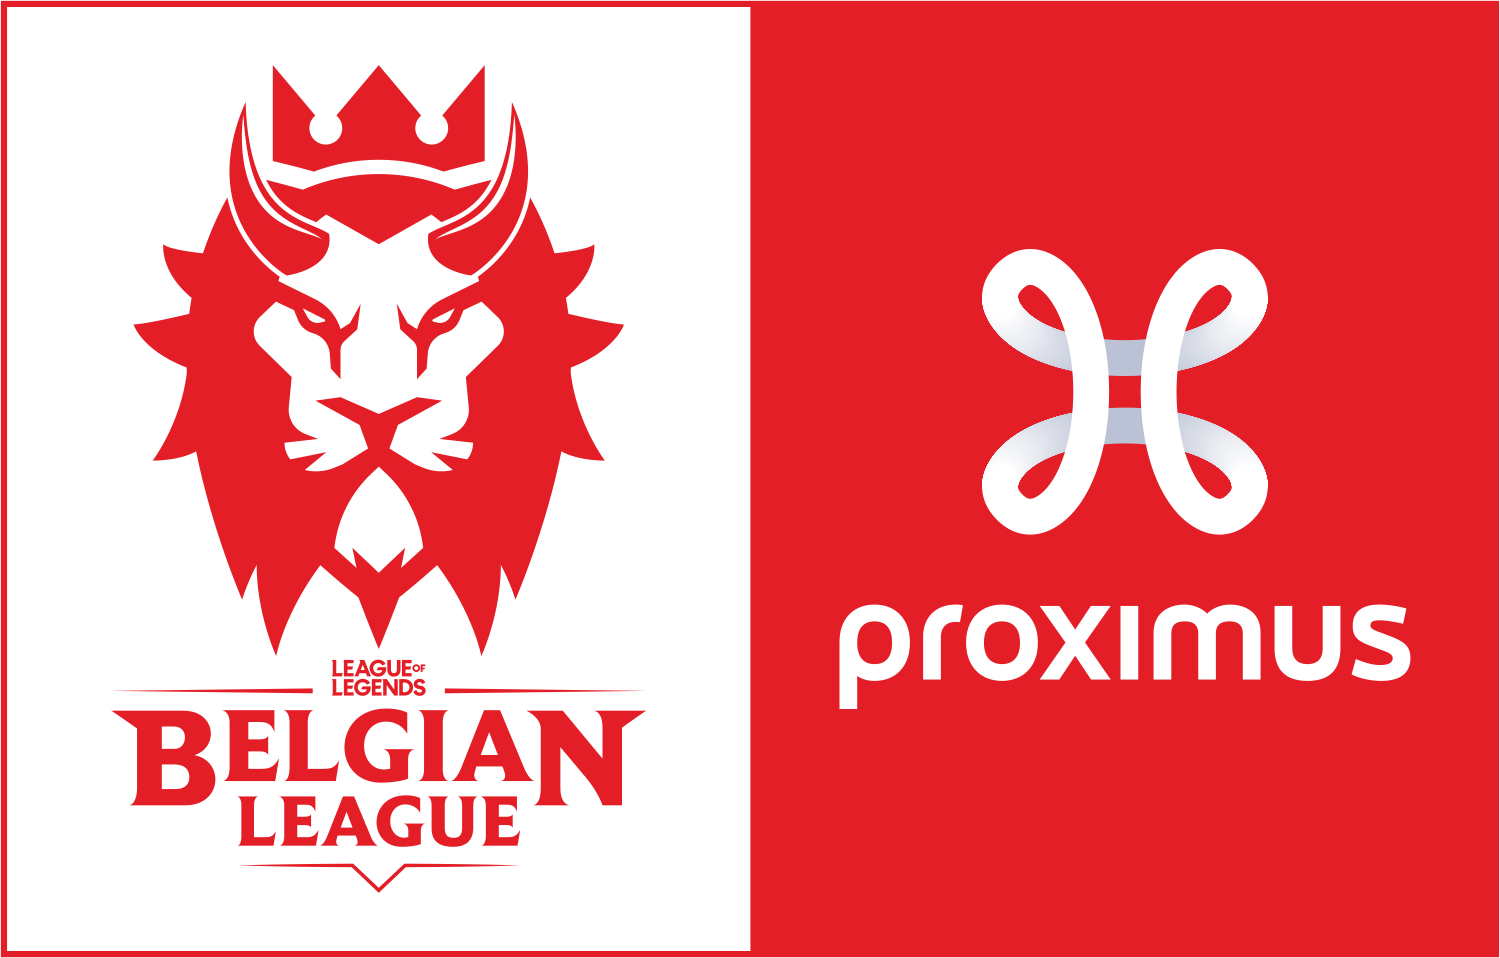 Belgian League 2020 Summer Playoffs Leaguepedia League Of Legends Esports Wiki